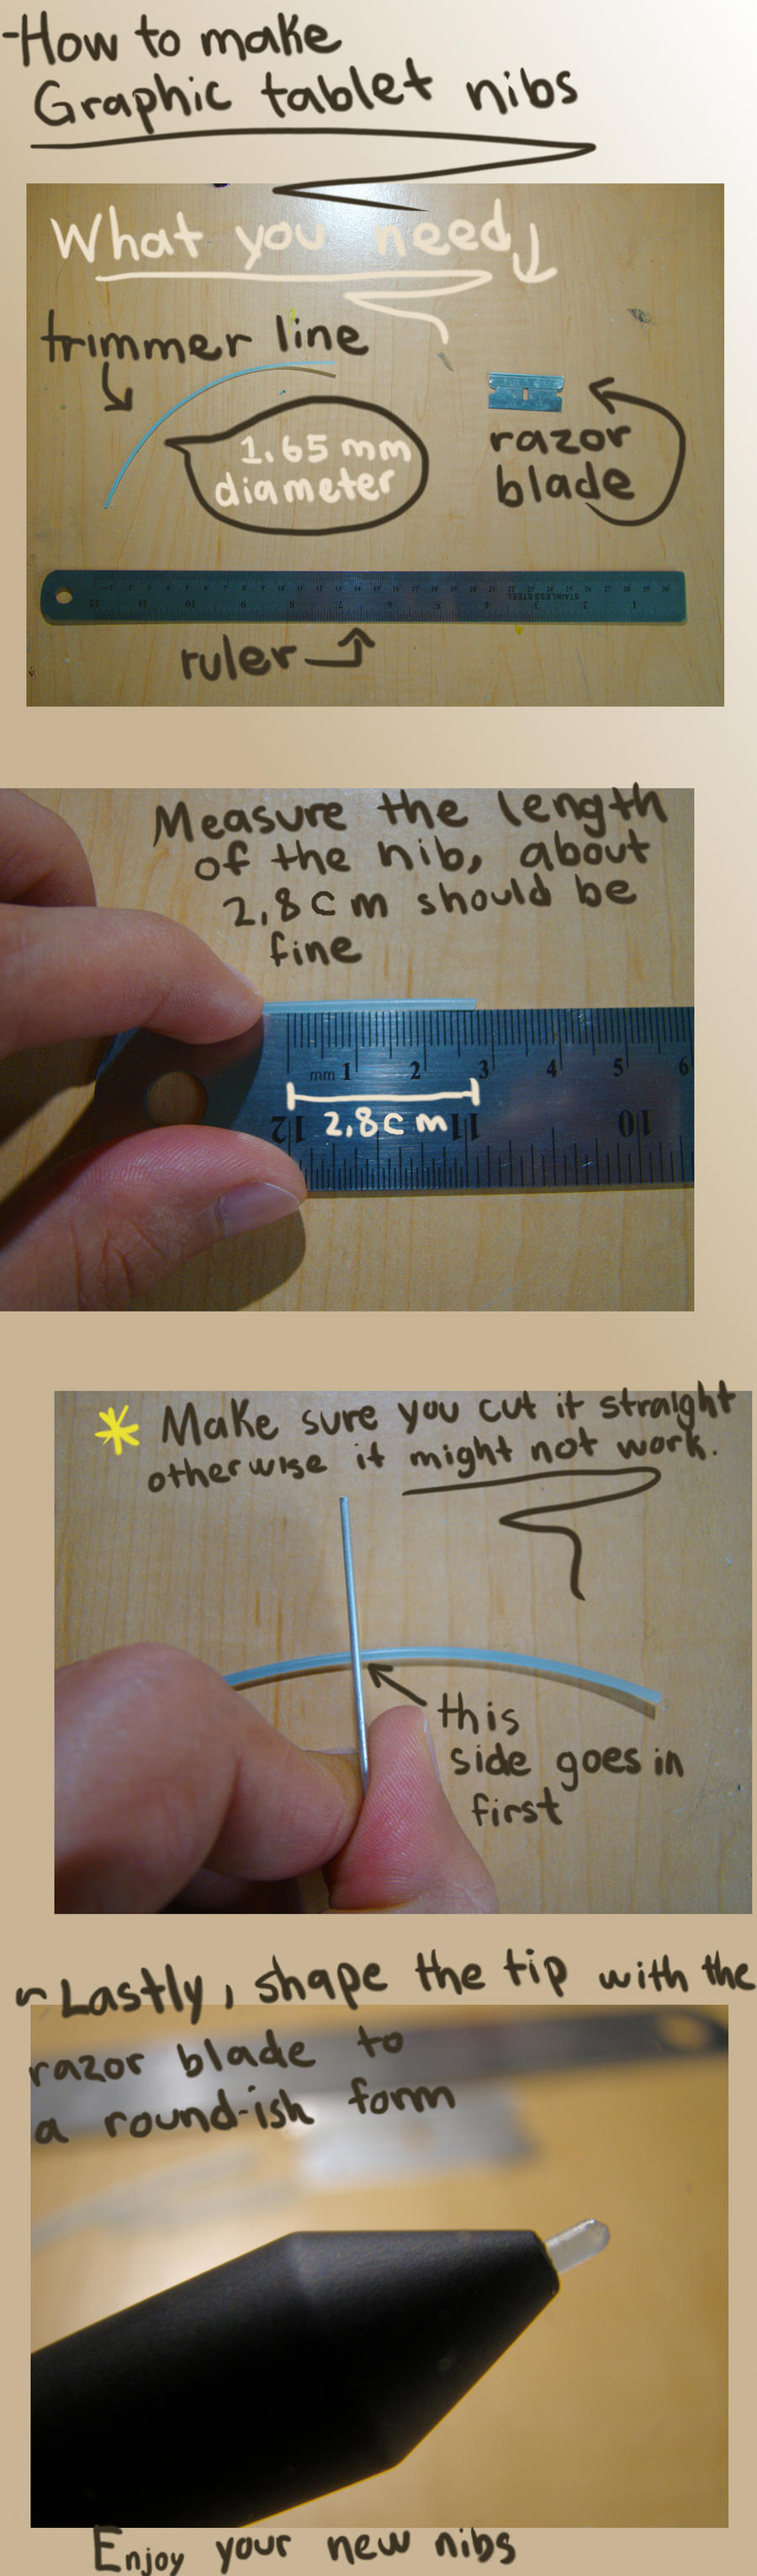 How to make your own graphic tablet nibs by l-gray-l